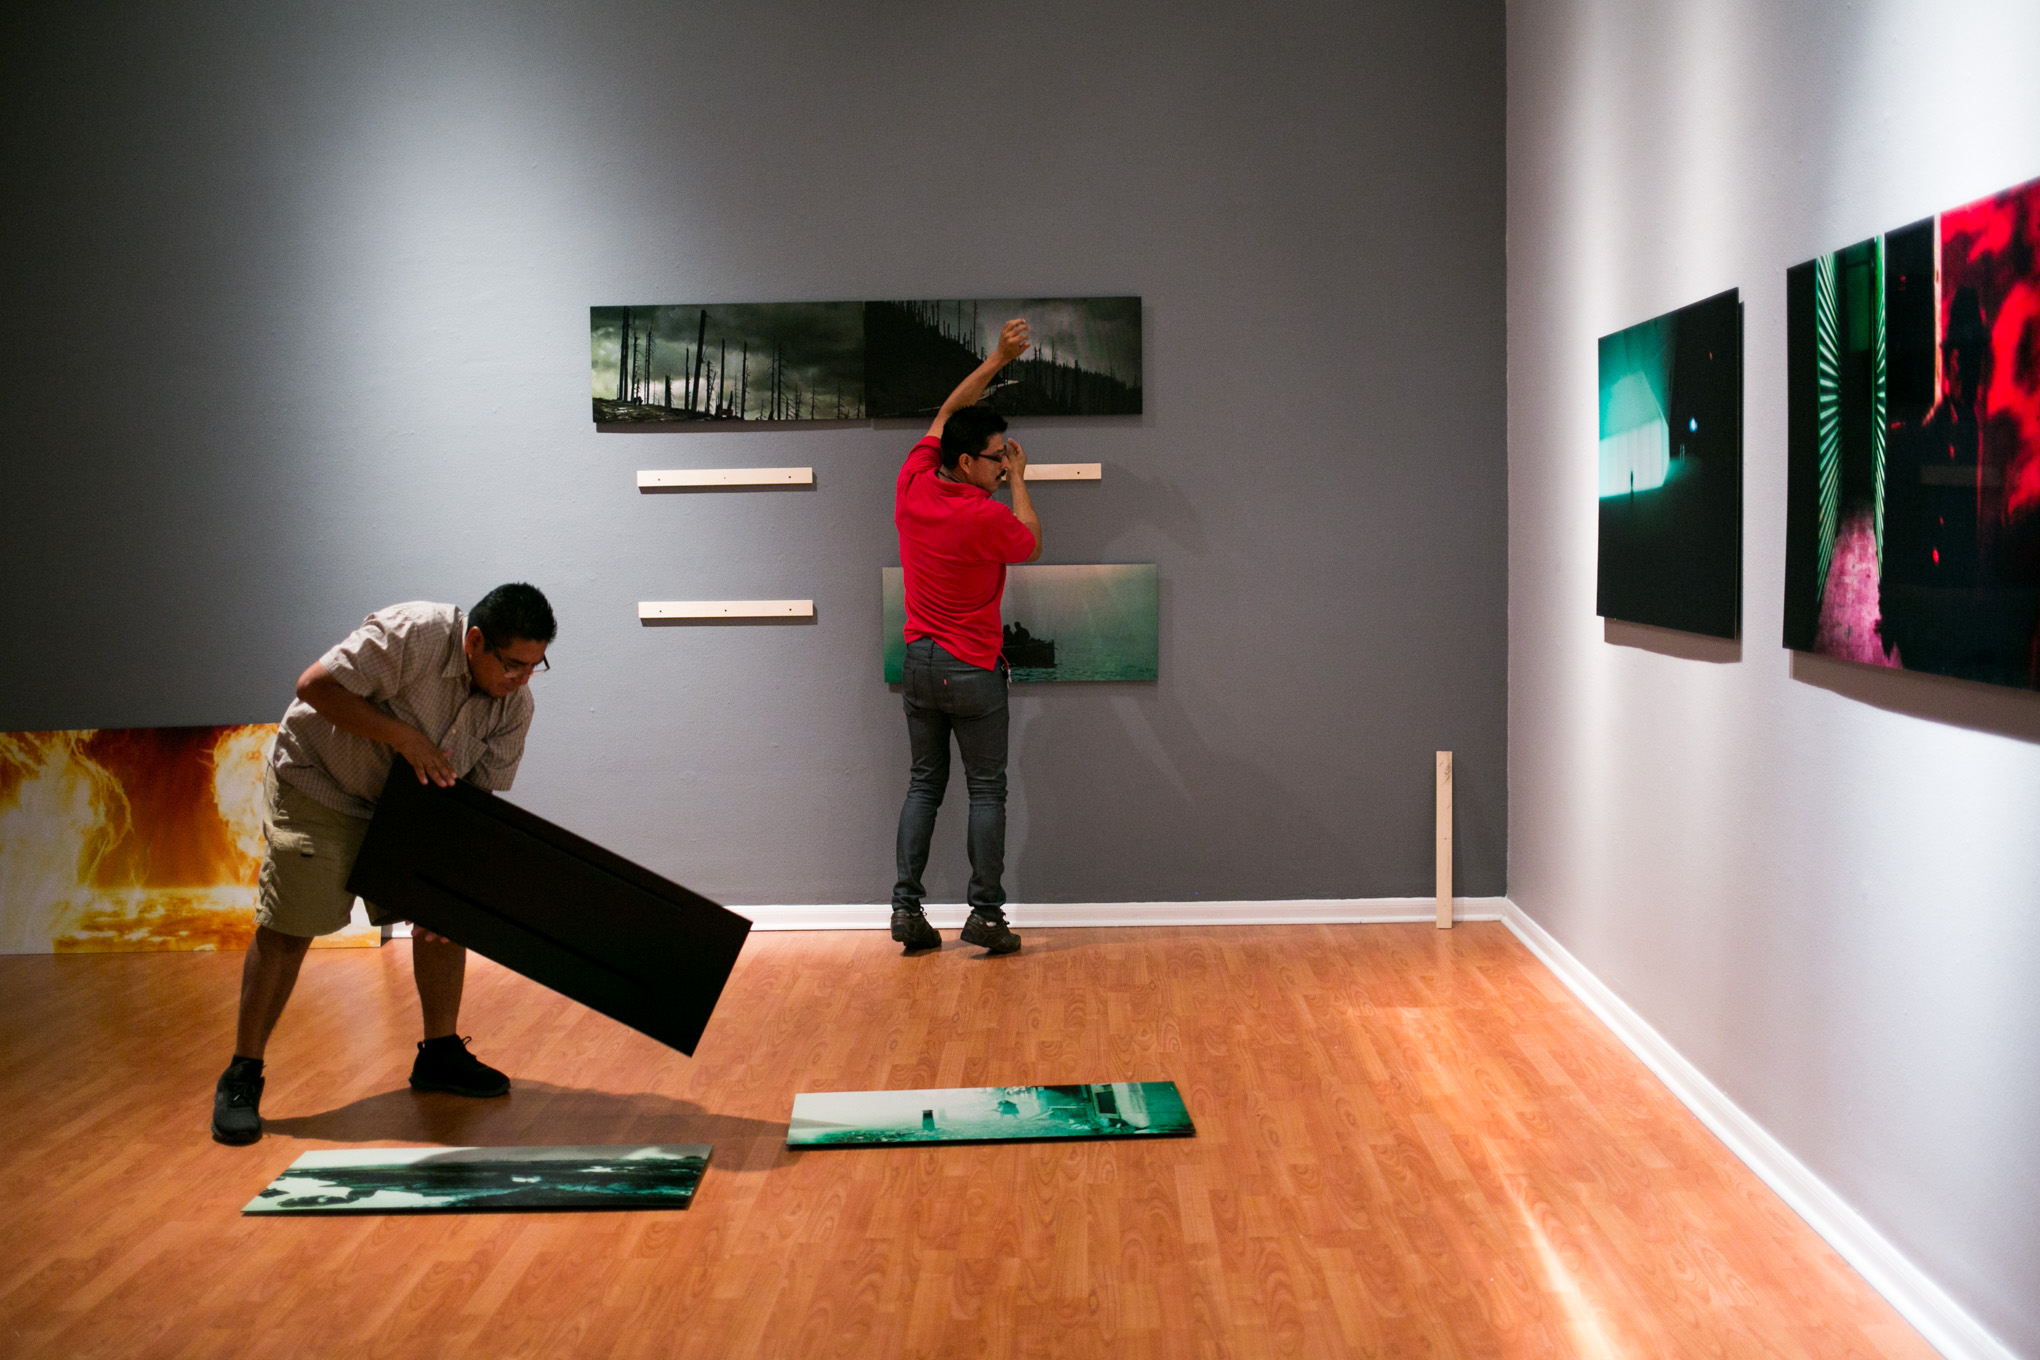 """Instituto Cultural de México staff begin setup for the """"Mundos Posibles   Possible Worlds"""" exhibit. Photo by Kathryn Boyd-Batstone."""